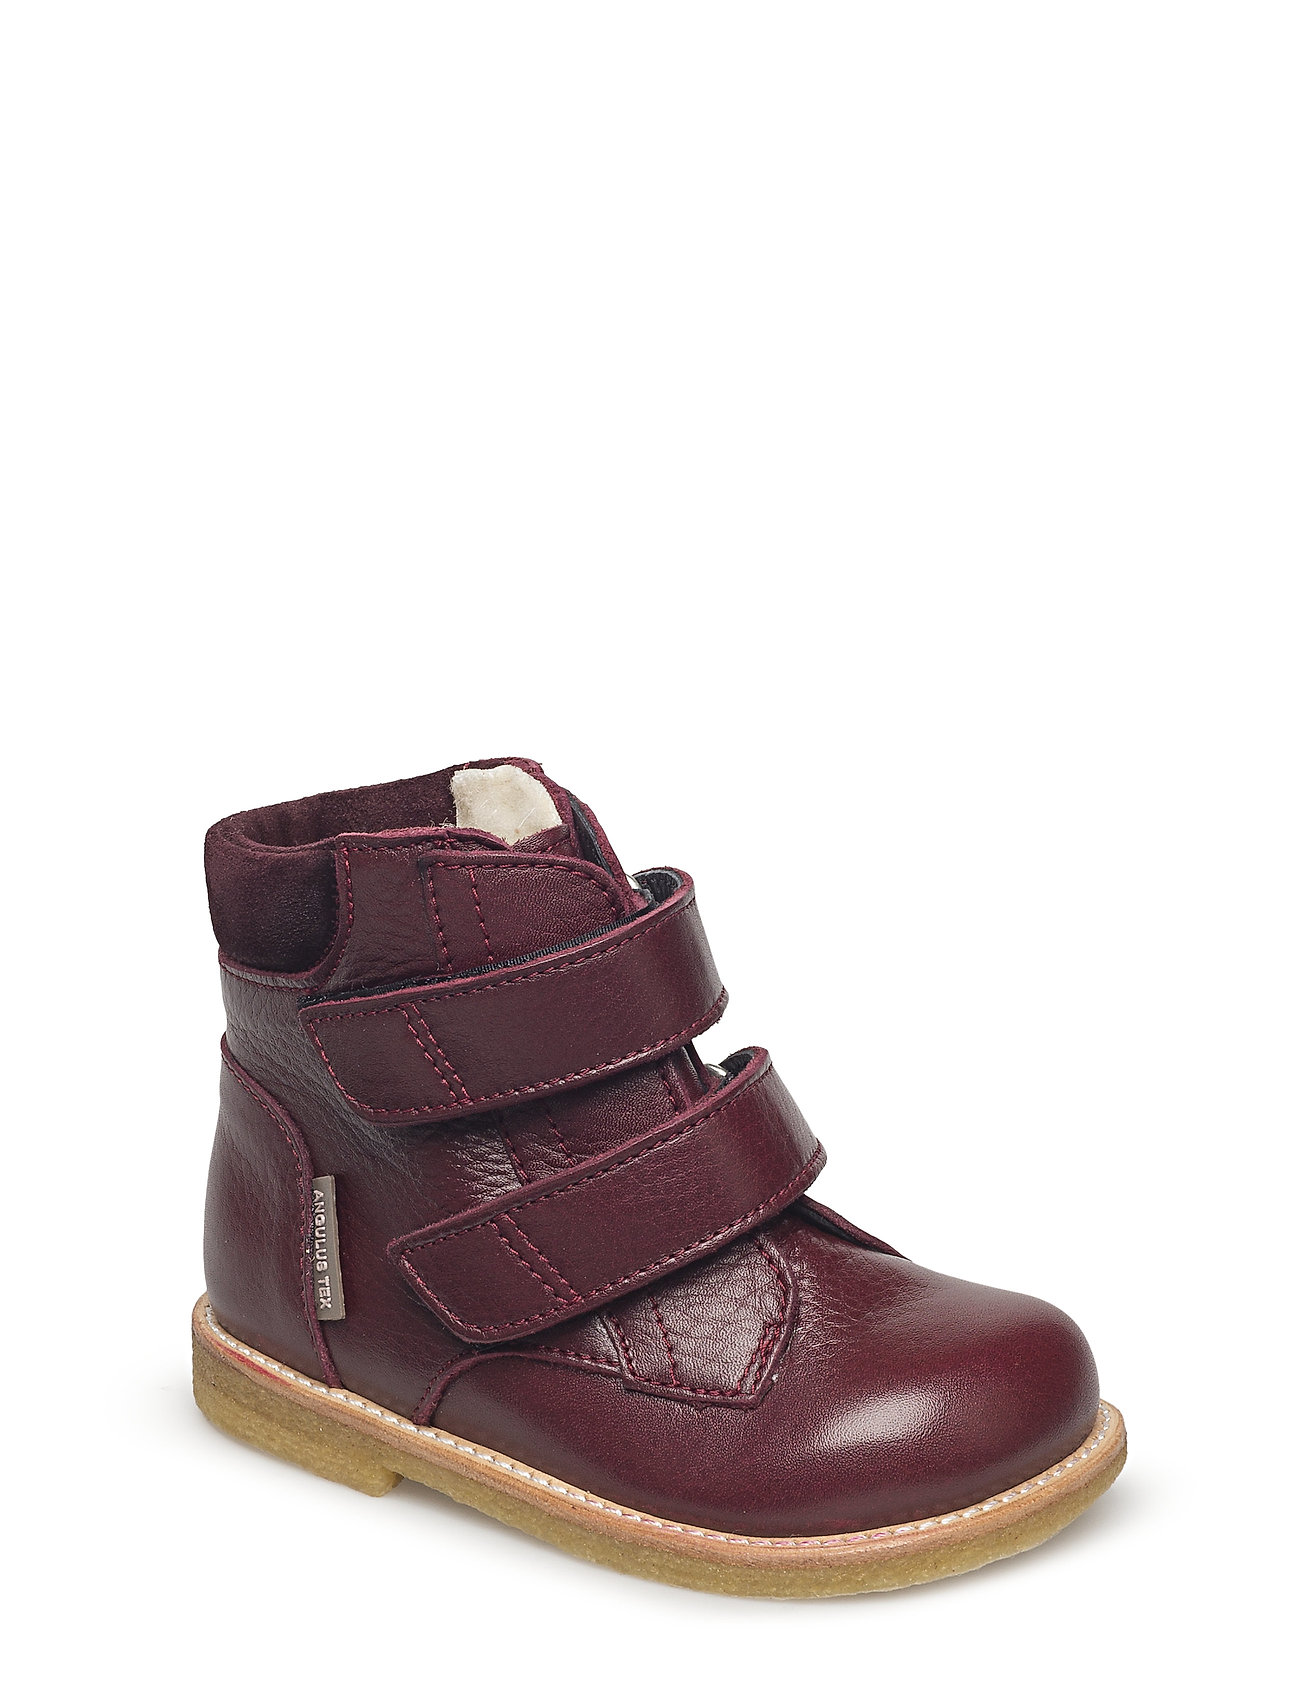 ANGULUS Boots - flat - with velcro - 2544/2195 BORDEAUX/BORD.